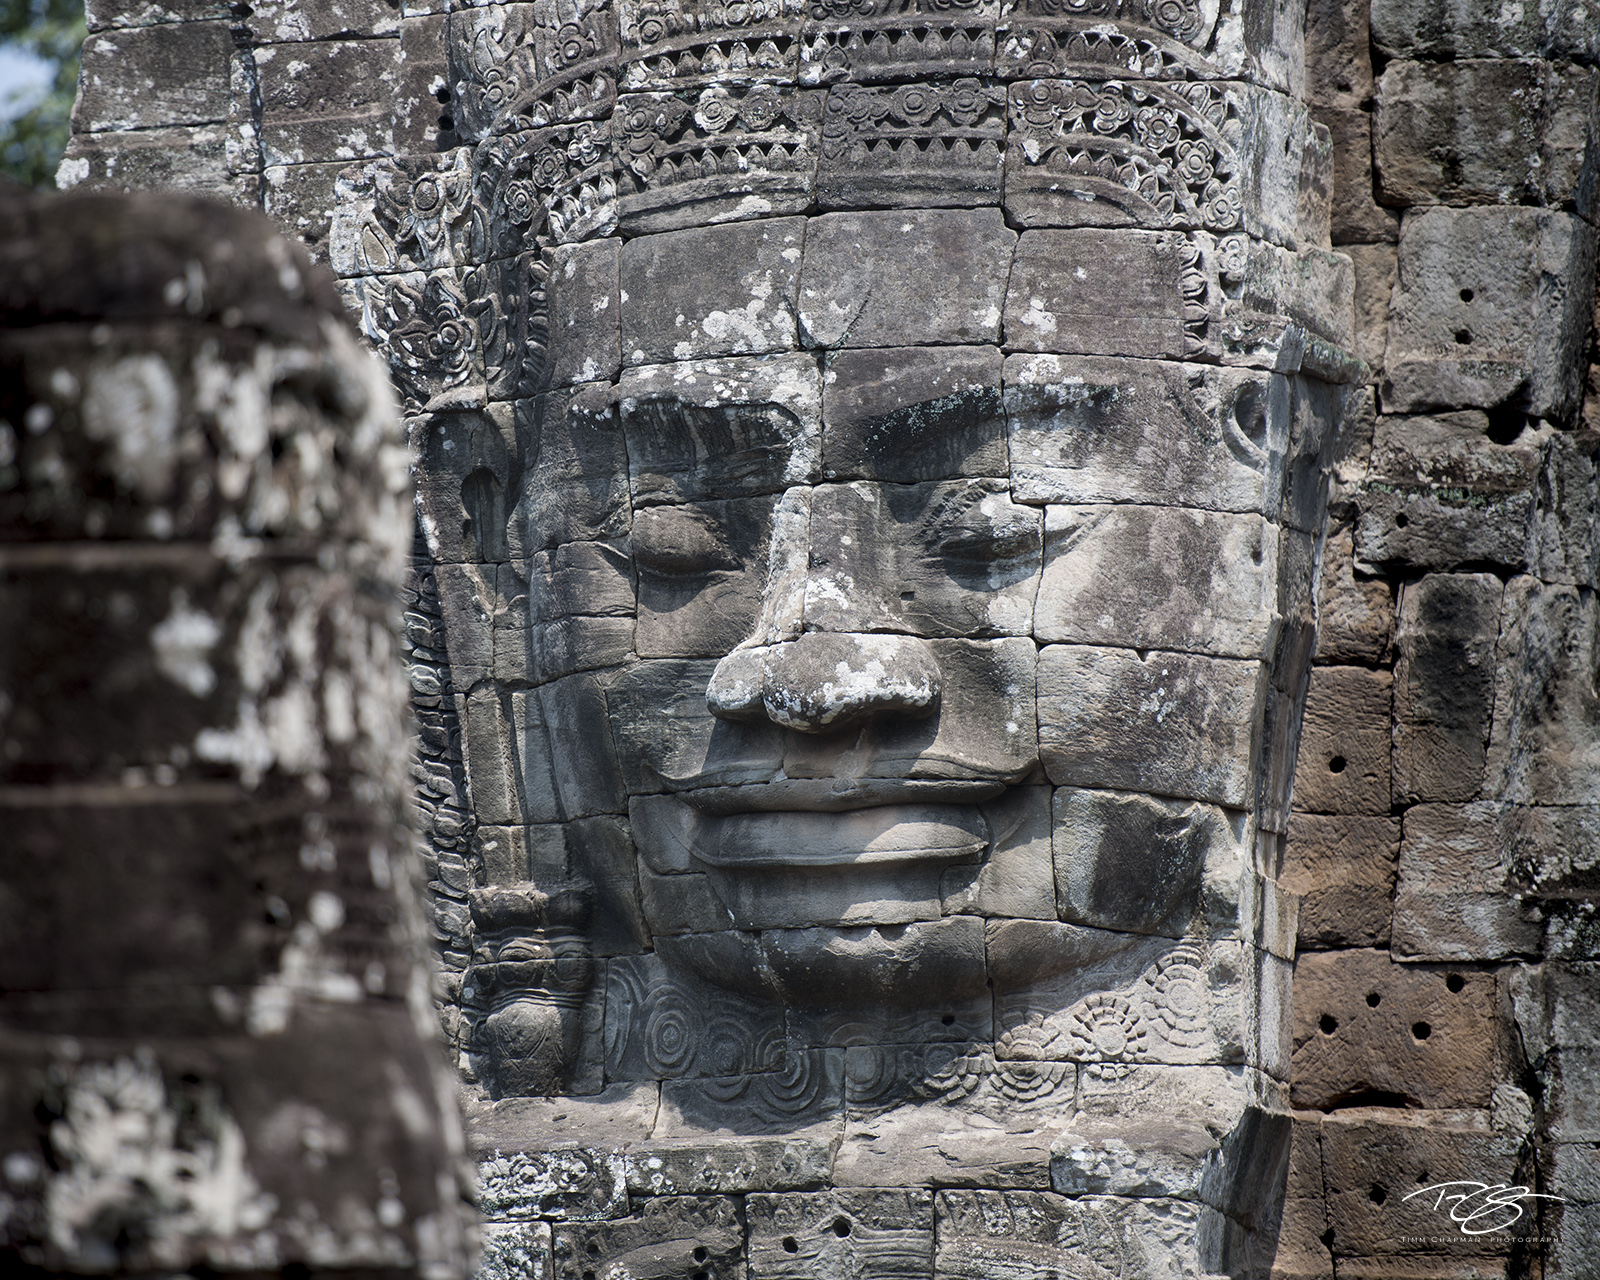 angkor wat, cambodia, temple, bayon, Avalokiteshvara, carving, stone, sculpture, ancient, buddha, buddhism, buddhist, smiling buddha, at peace, peace, tranquility, solace, contemplative, calm, calming, photo